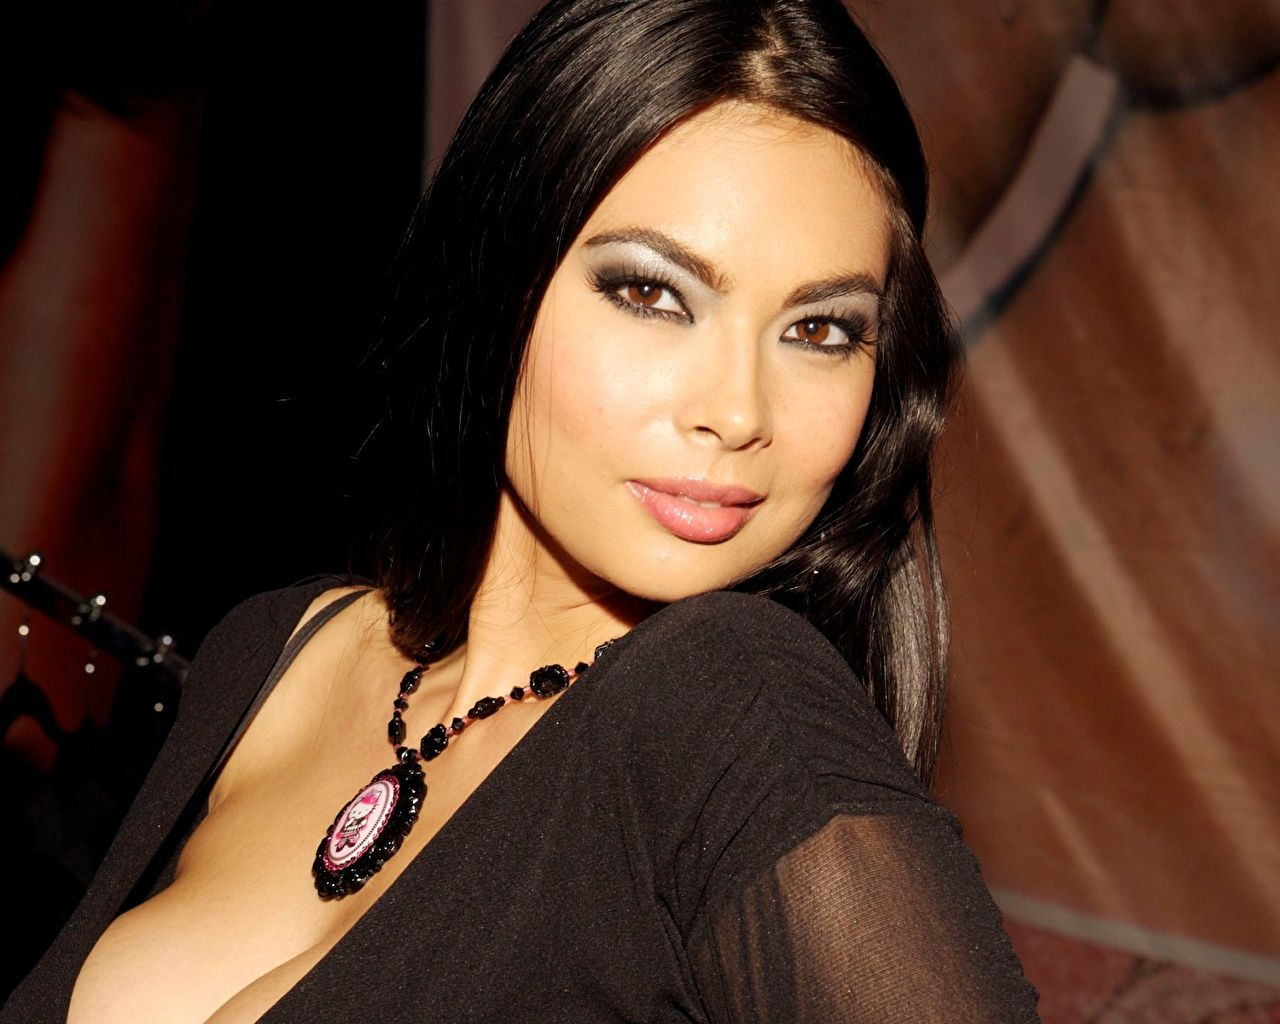 Twitter Tera Patrick nudes (61 photo), Tits, Cleavage, Feet, lingerie 2006